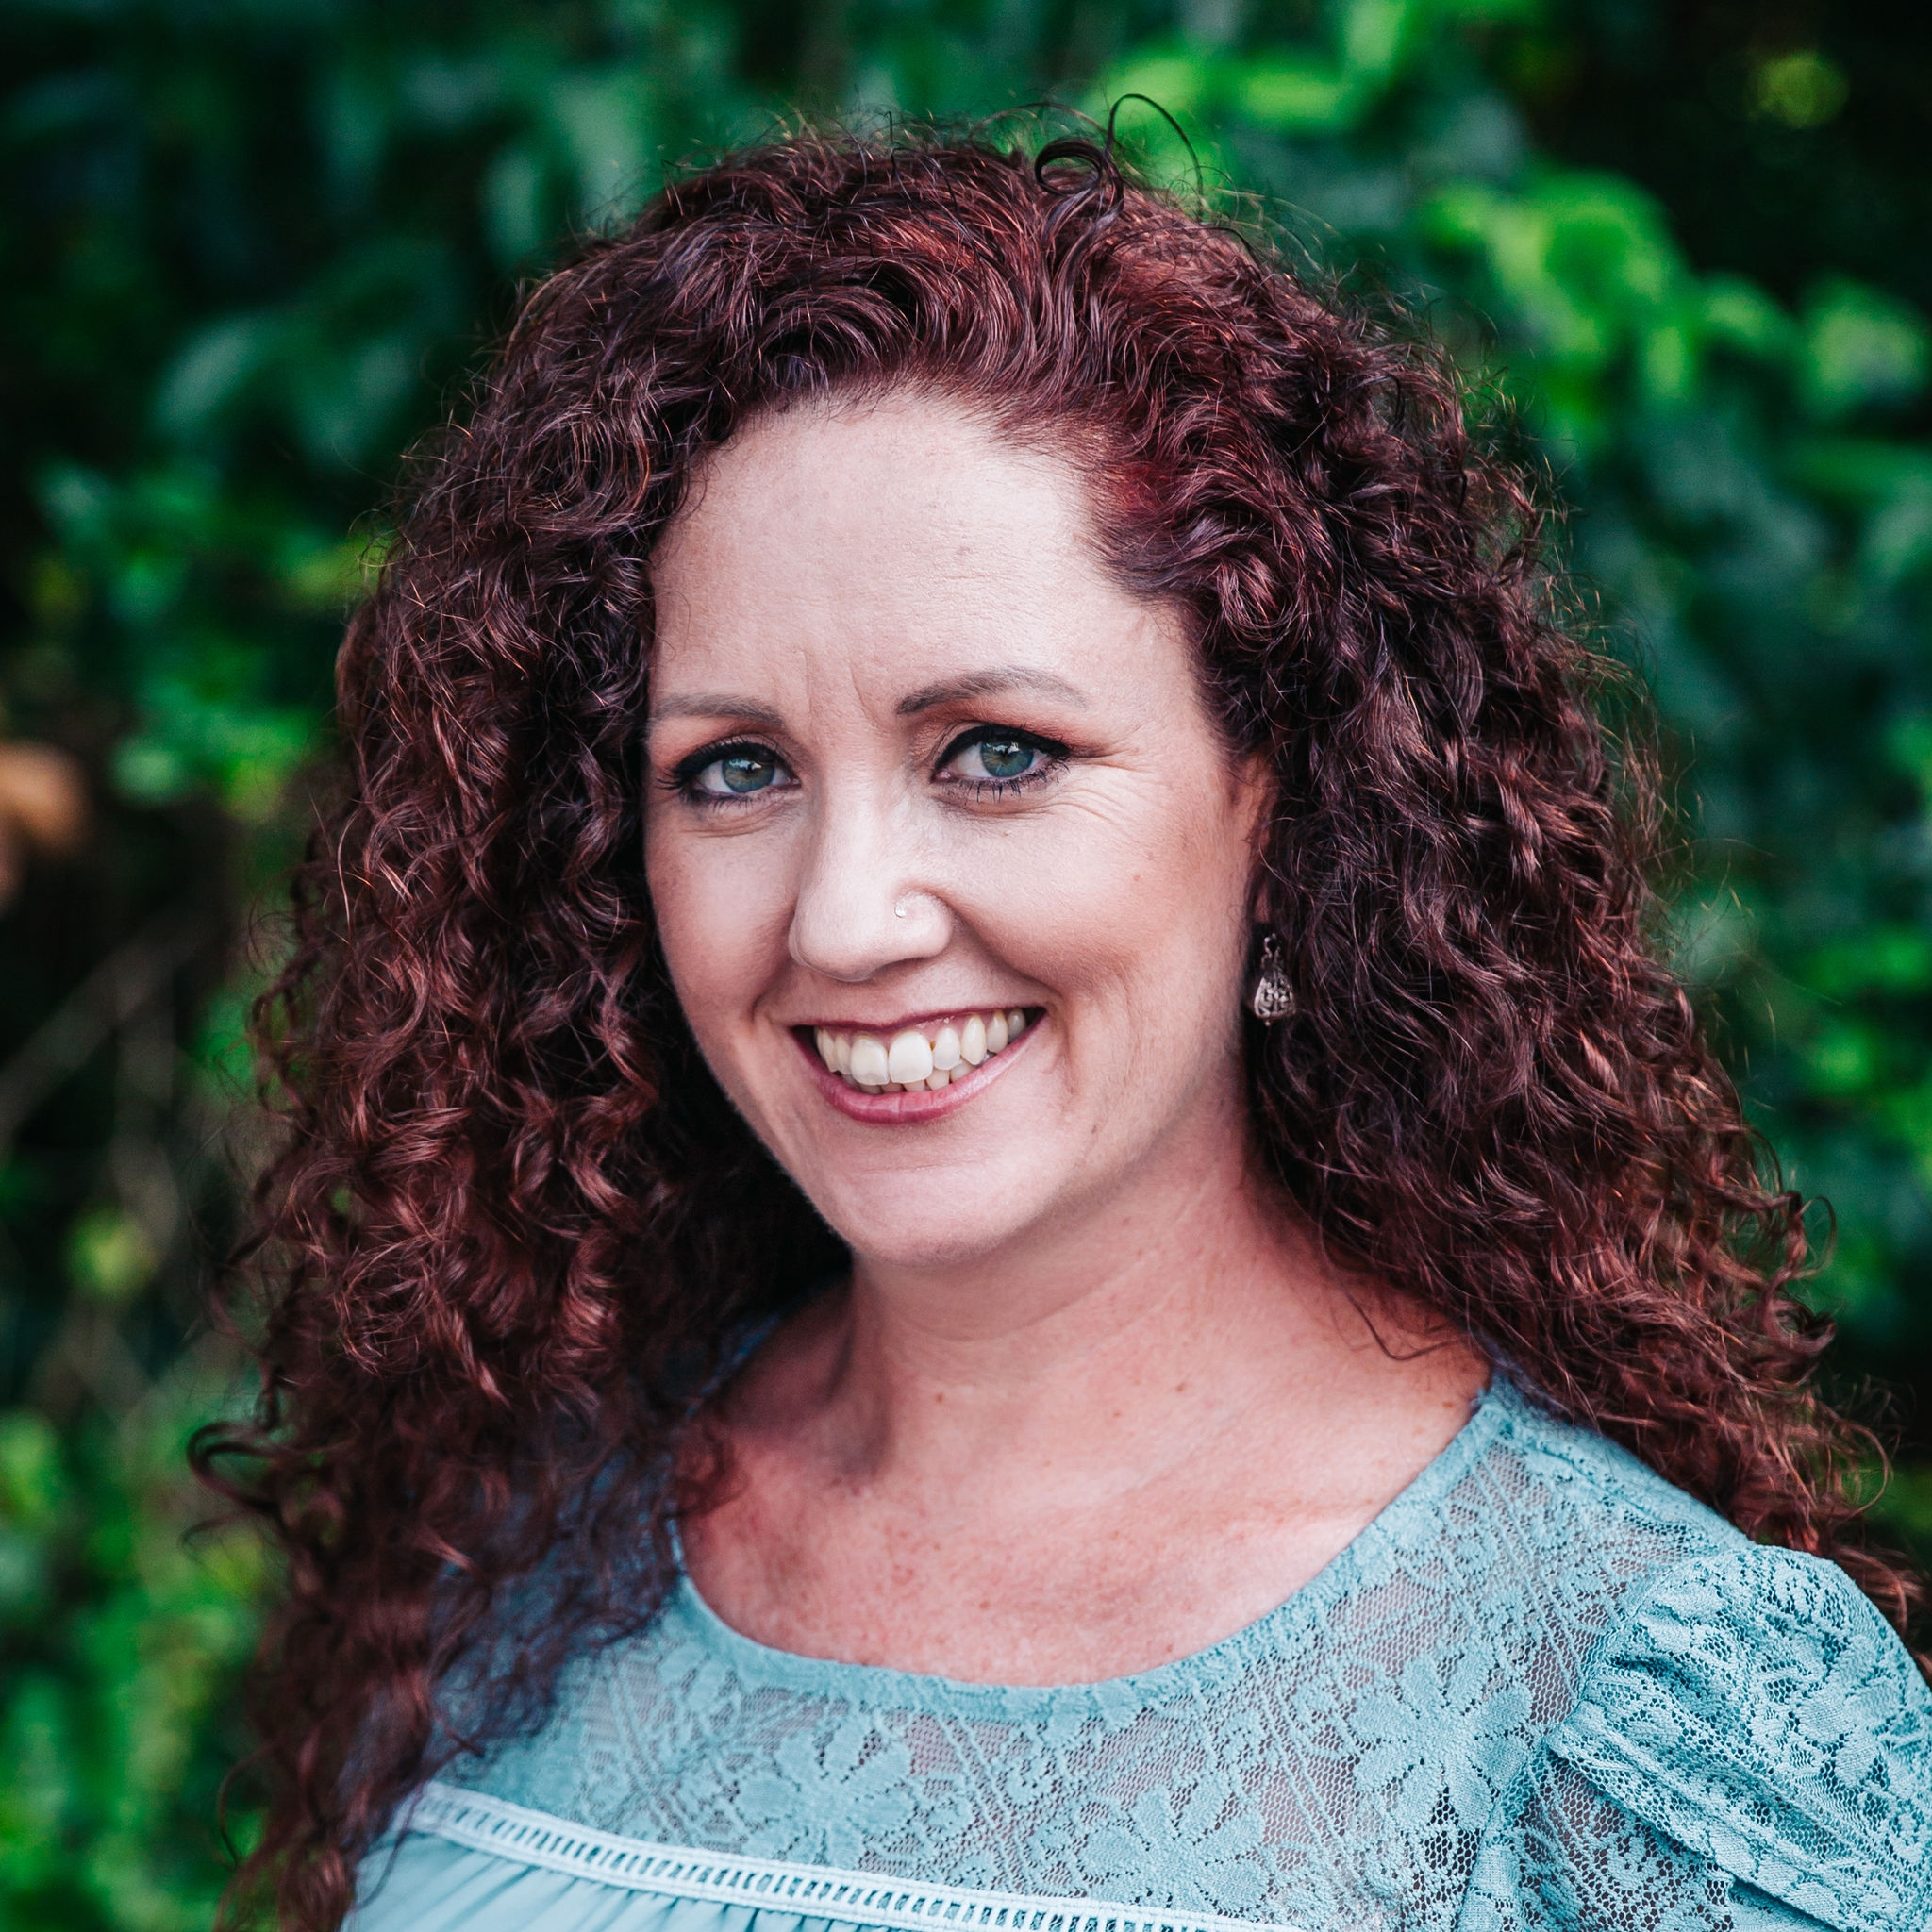 Christy Shields, CLC  Lactation Counselor and Childbirth Educator